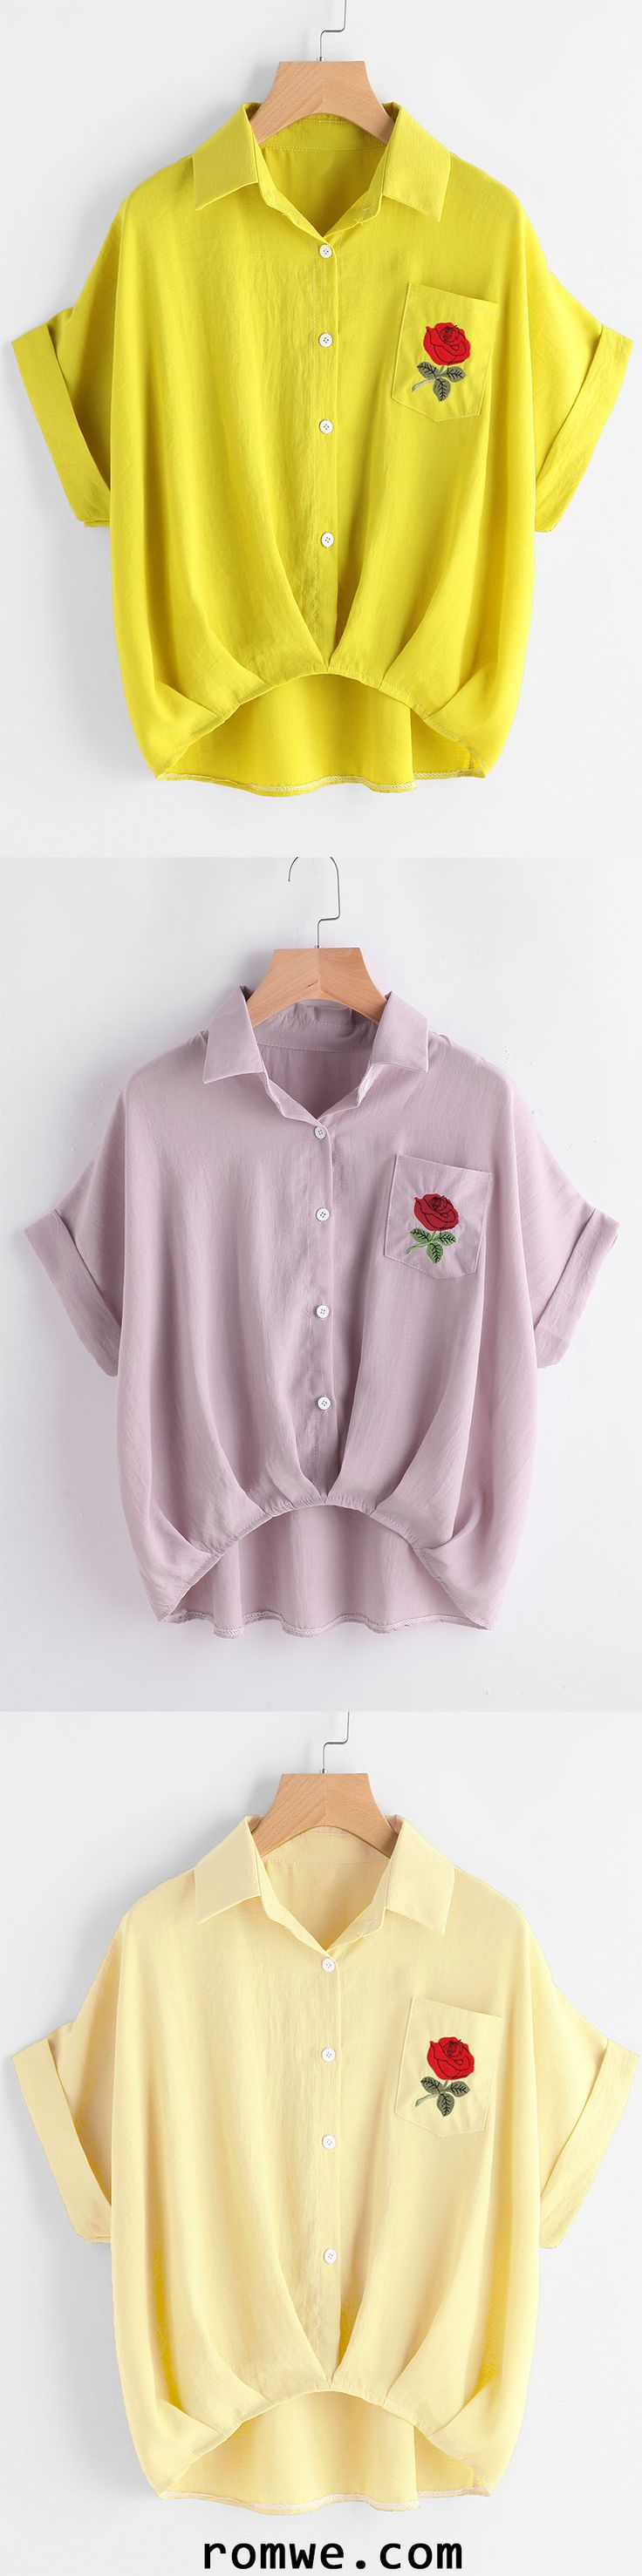 Floral Embroidered High Low Cuffed Shirt With Chest Pocket